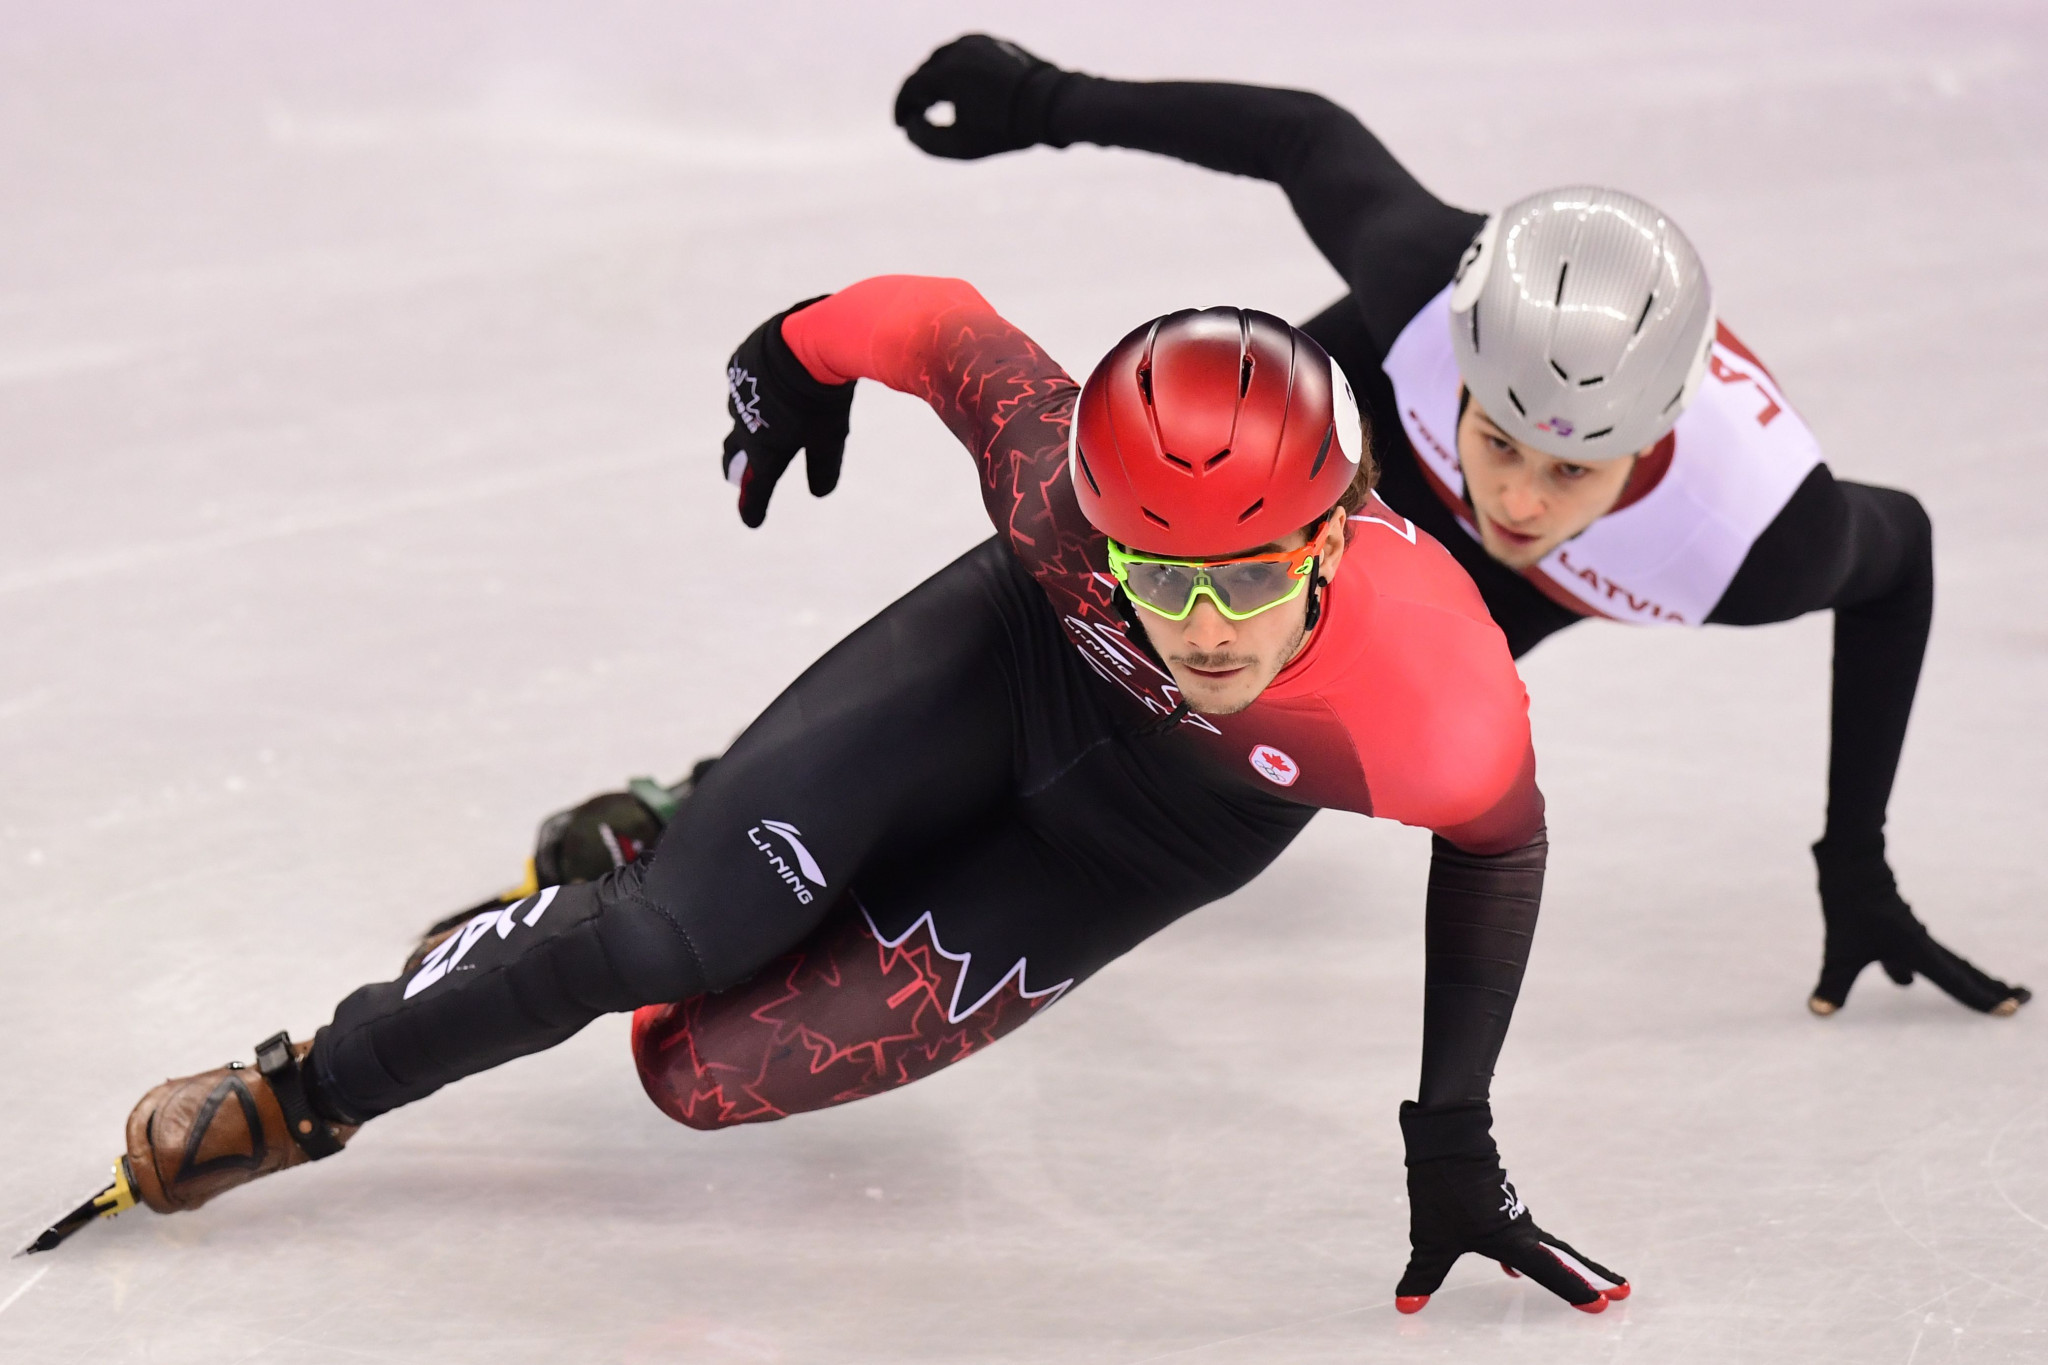 Olympic speed skating champion Girard announces retirement